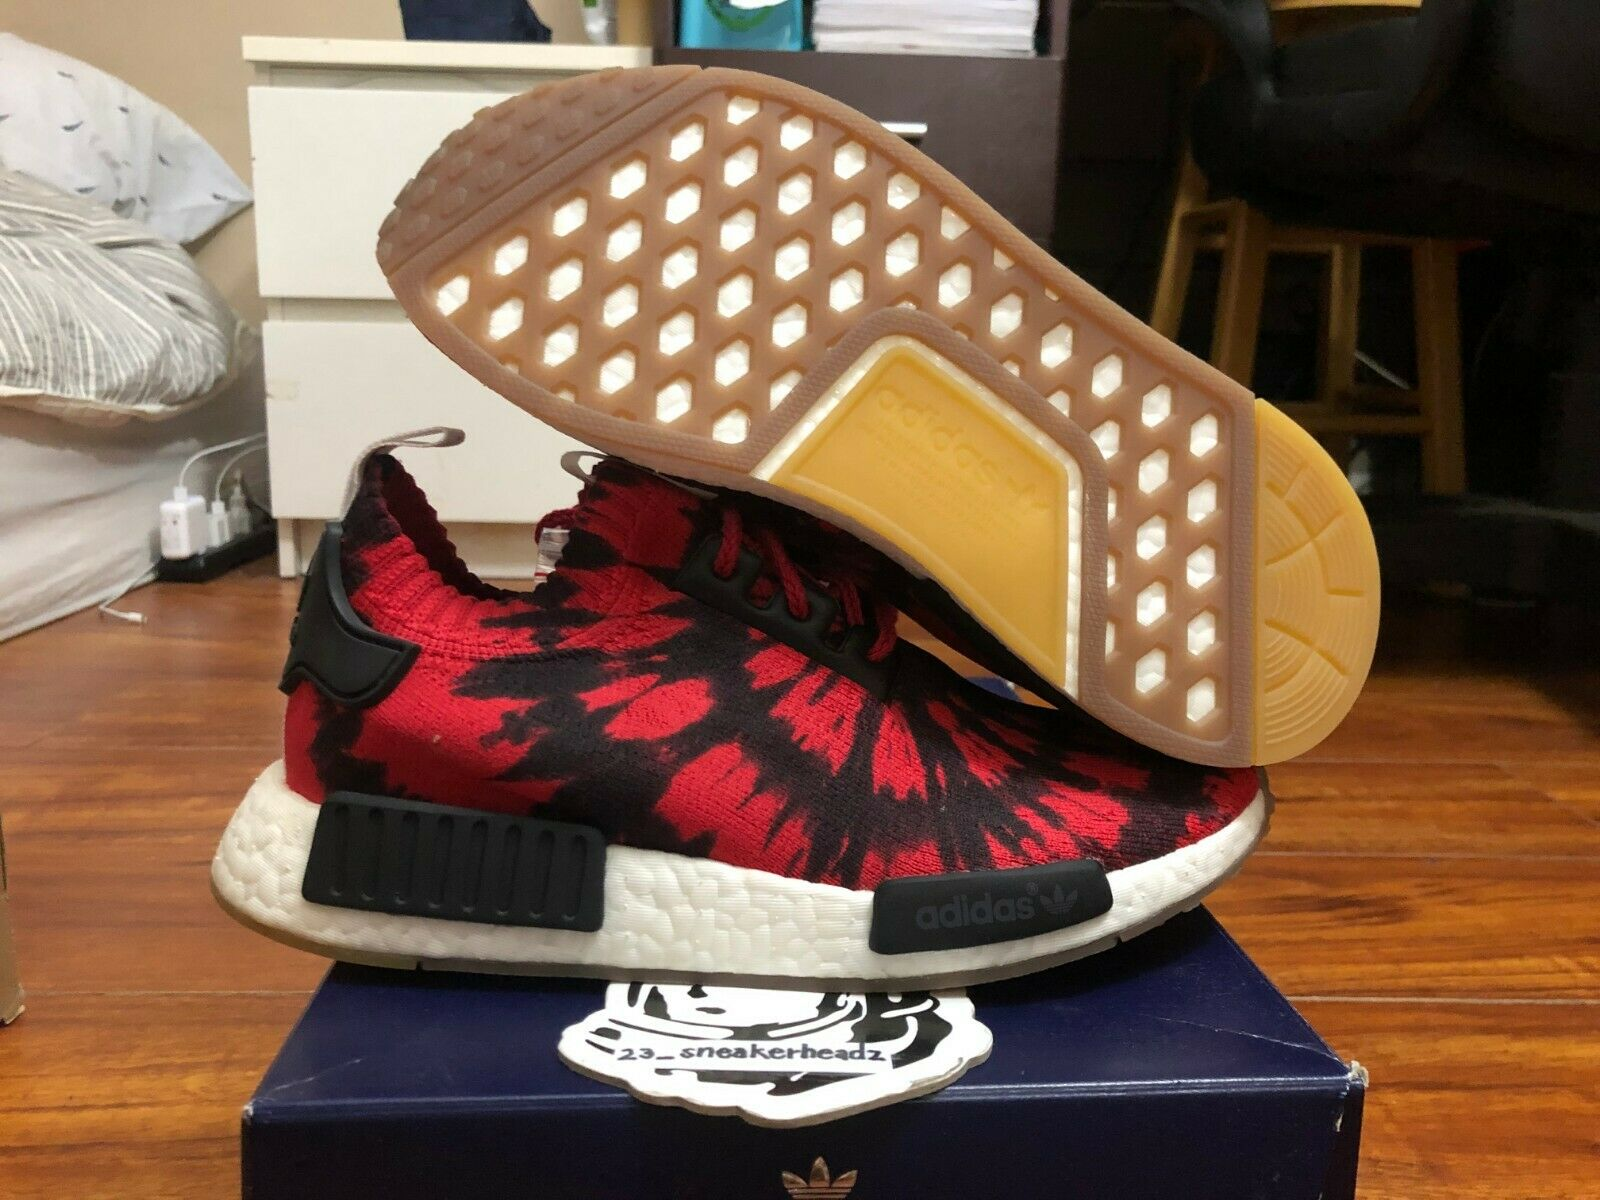 Adidas Adidas Adidas NMD R1 PK  Nice Kicks  AQ4791 Size 6.5 DS 100% authentic 4be71d